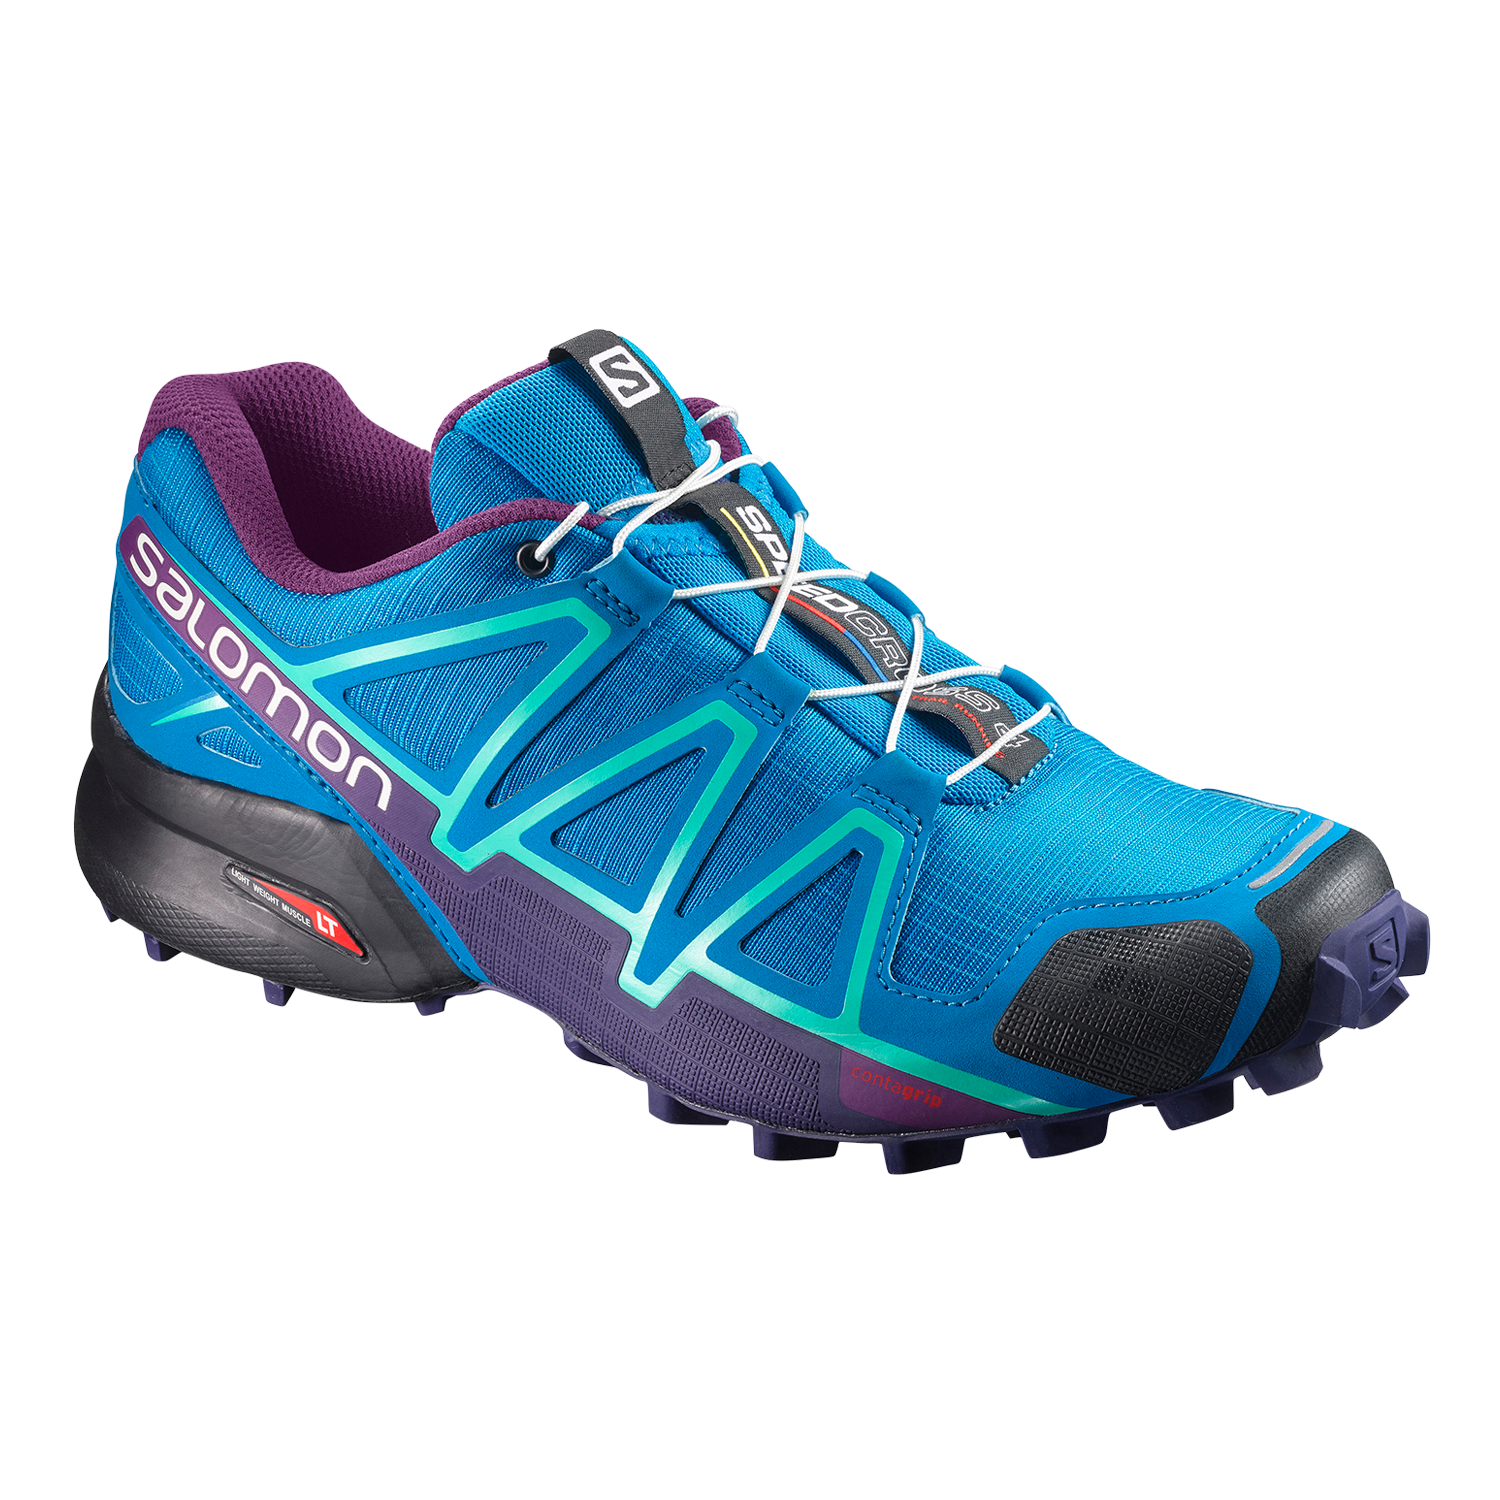 36 Best Salomon images | Trail running shoes, Shoes, Trail